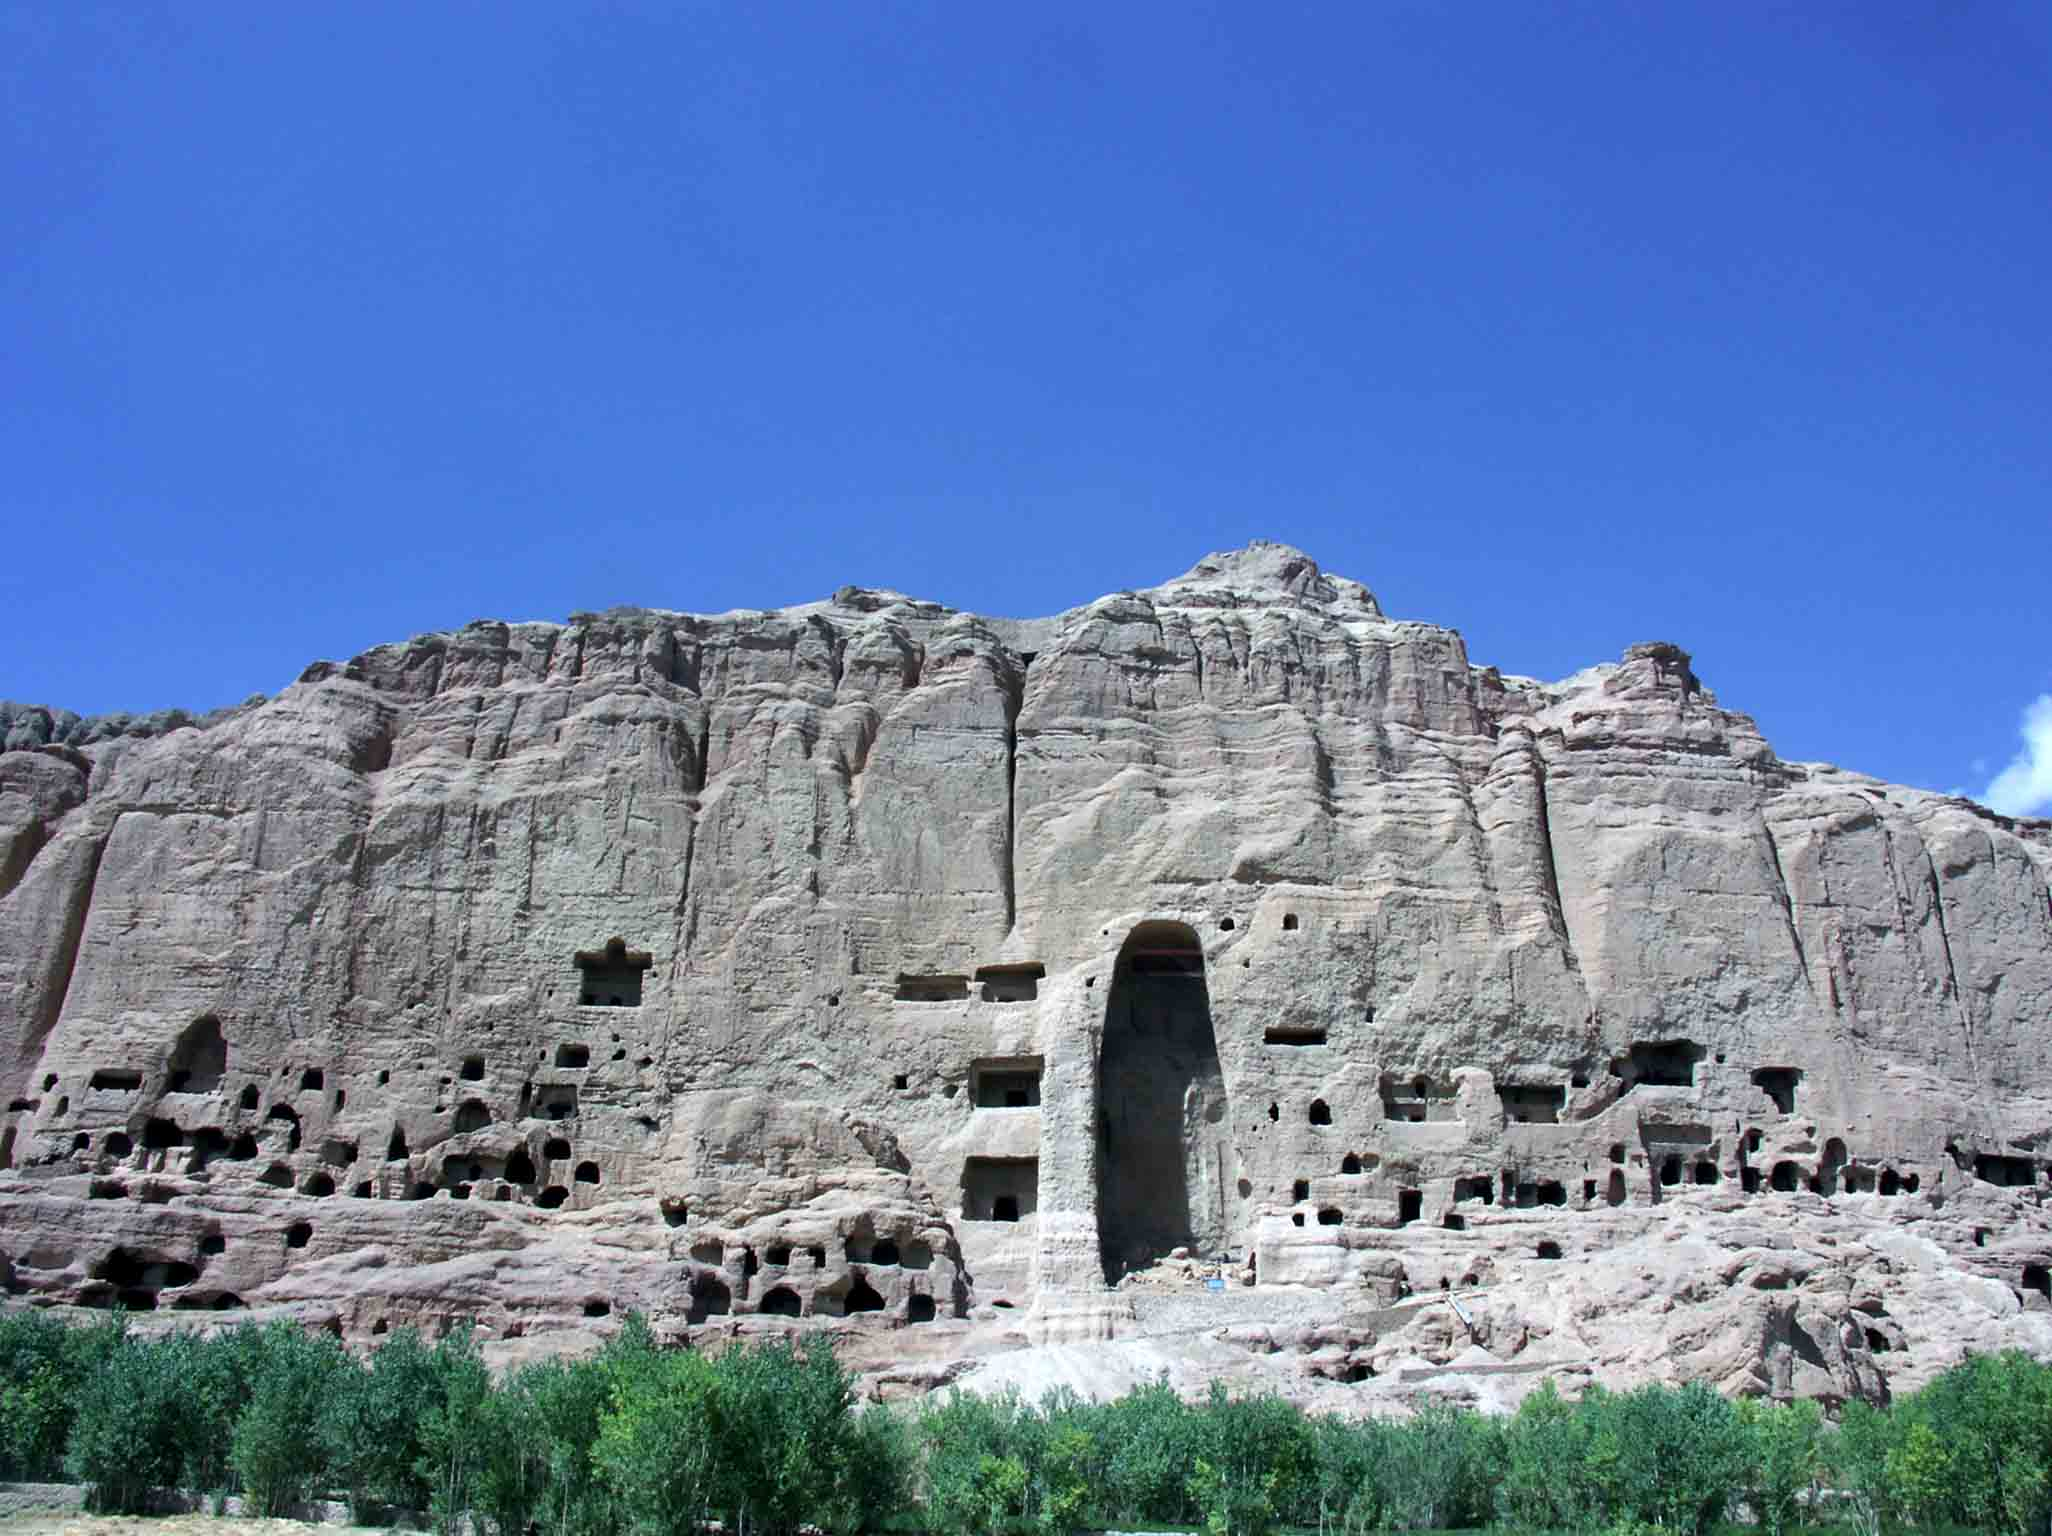 one of the destroyed budda niches at bamiyan afgha downs jim